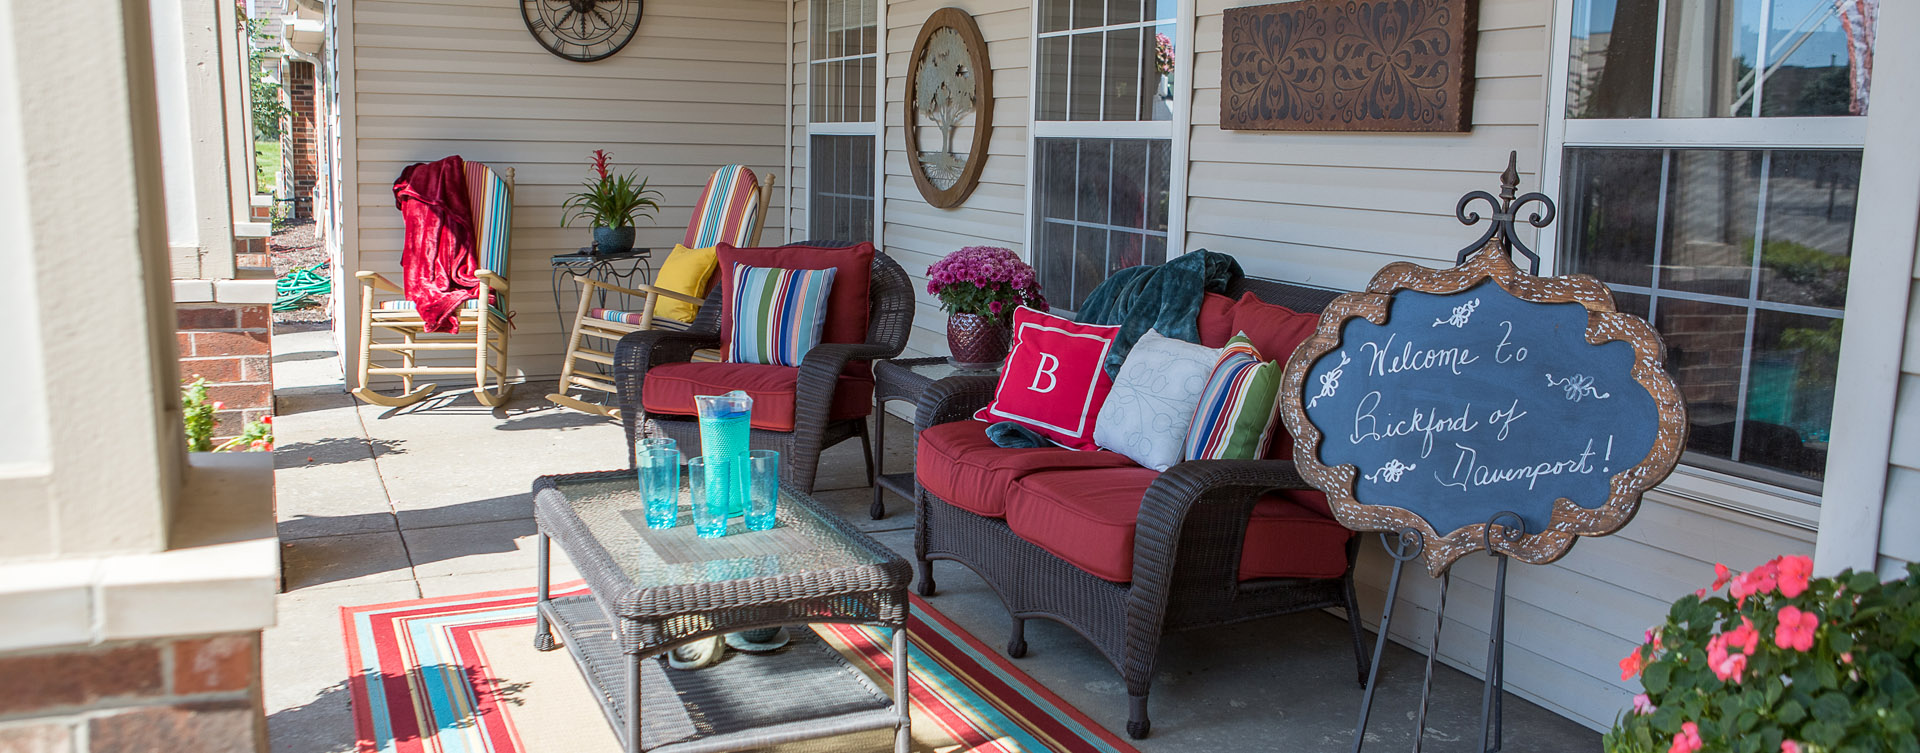 Relax in your favorite chair on the porch at Bickford of Davenport